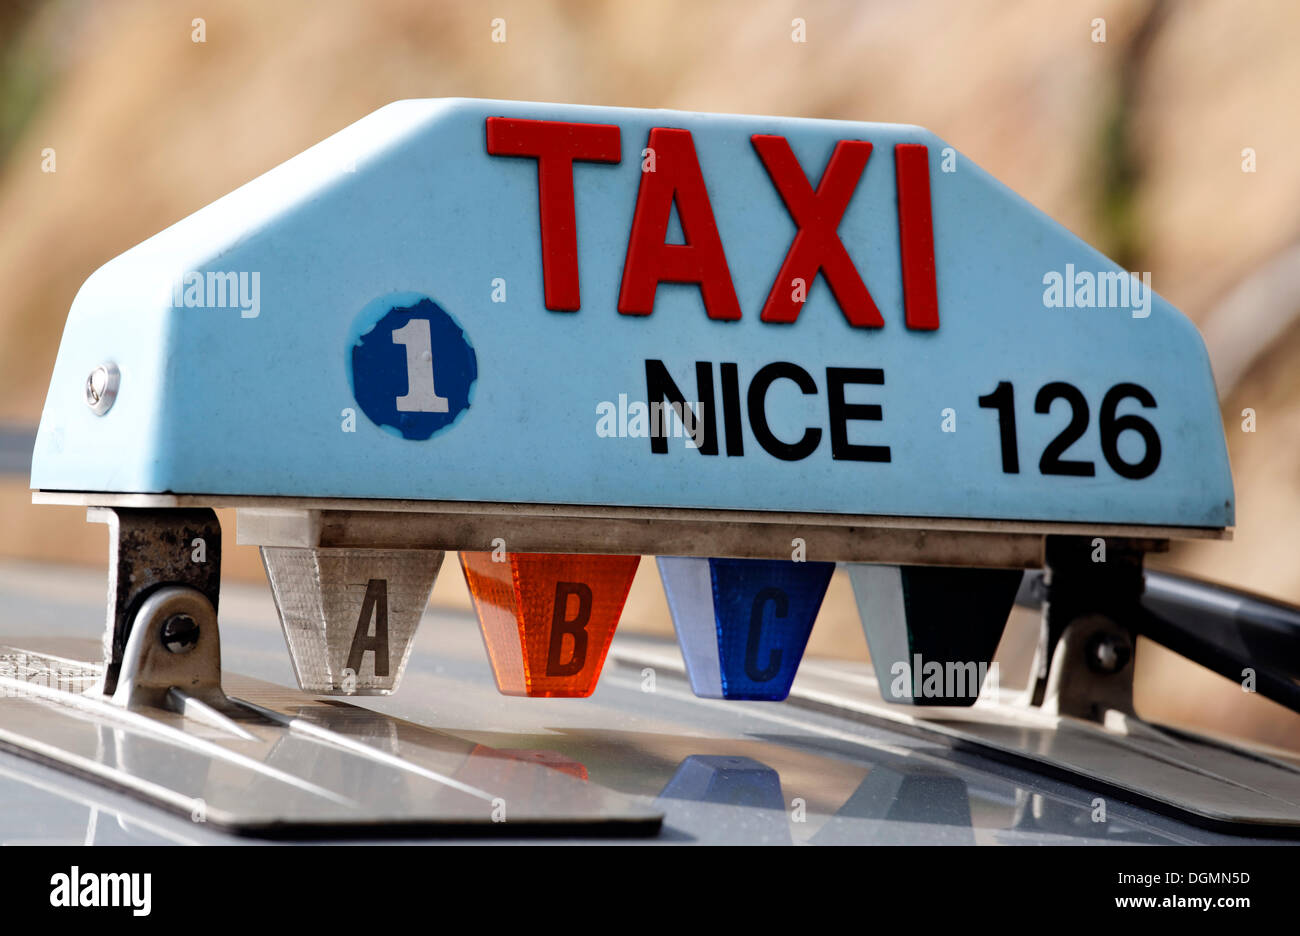 Taxicab from Nice, sign on a car roof, Provence-Alpes-Côte d'Azur region, France, Europe - Stock Image